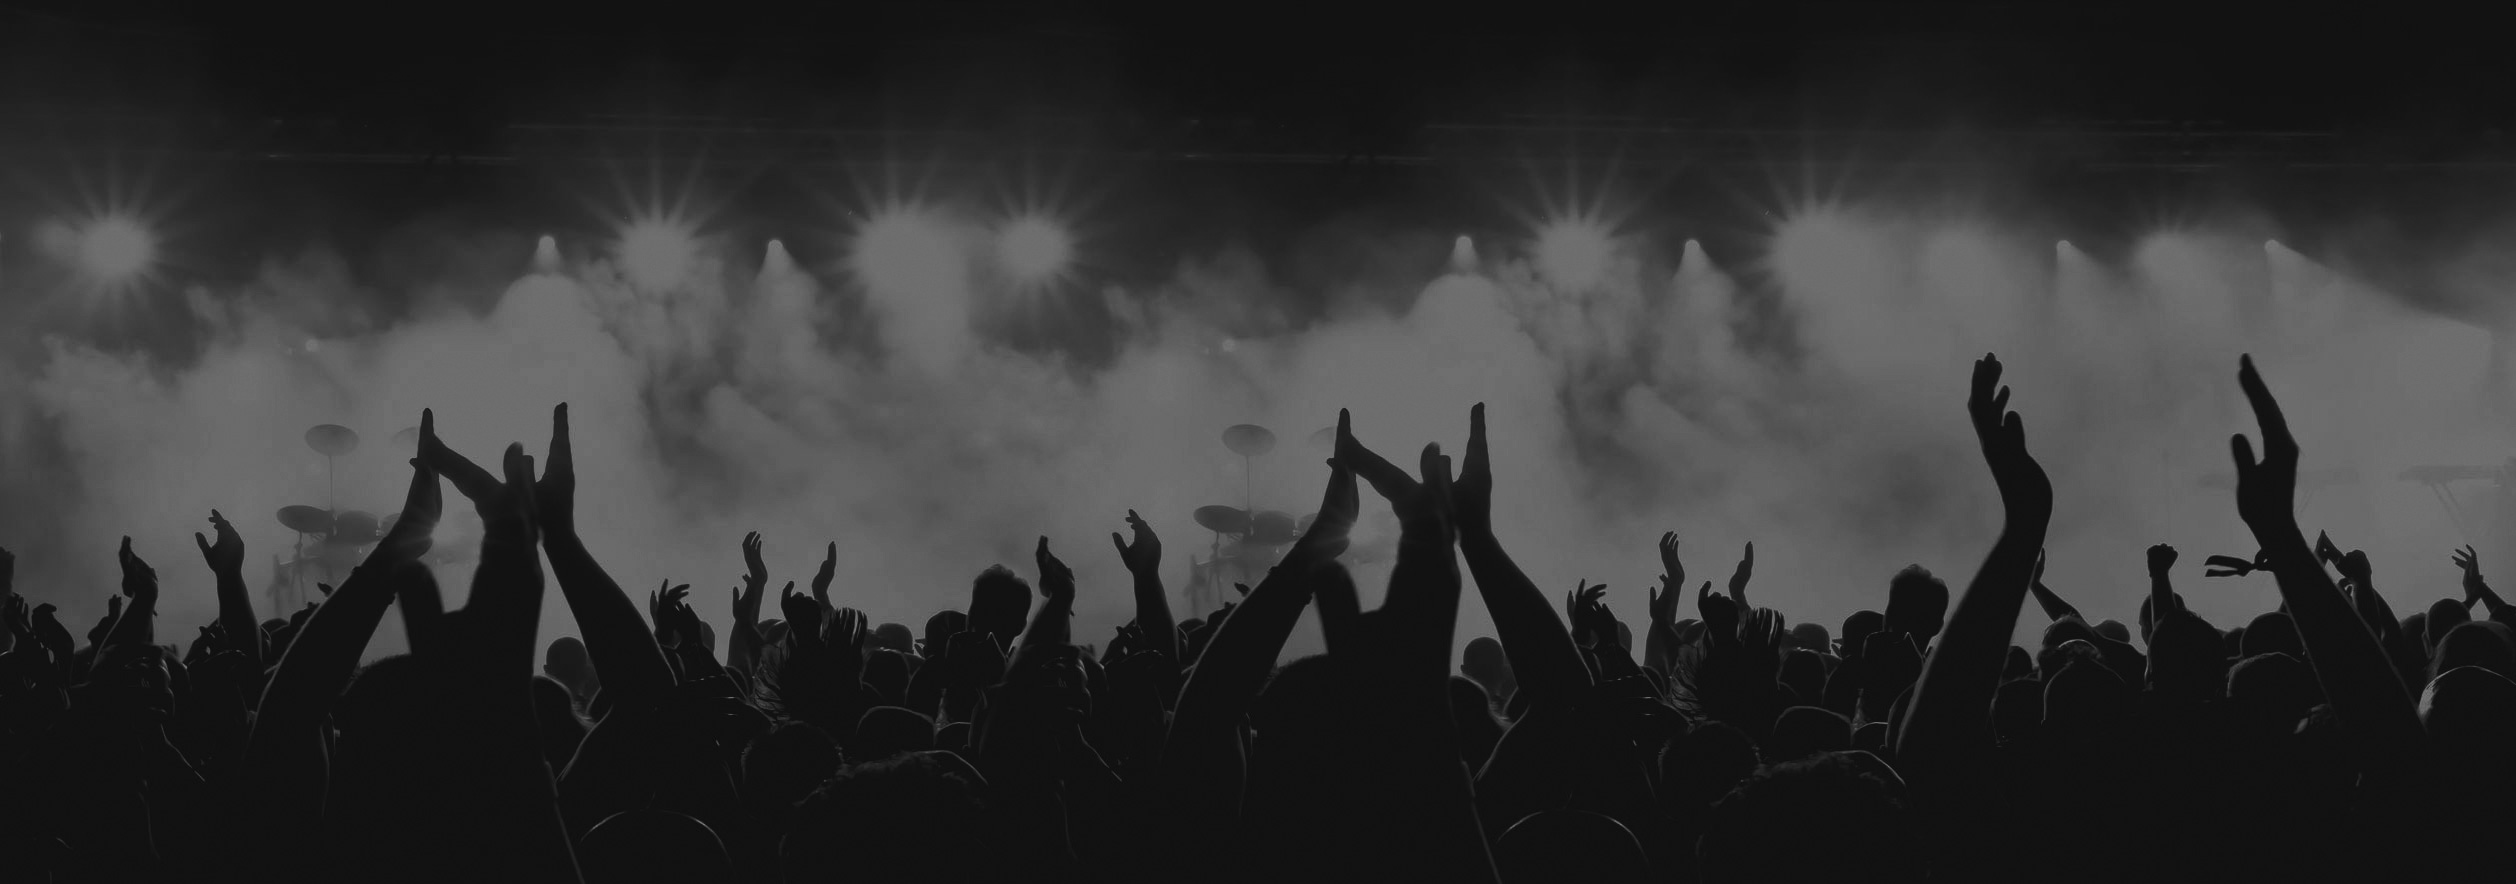 Festival Crowd Header